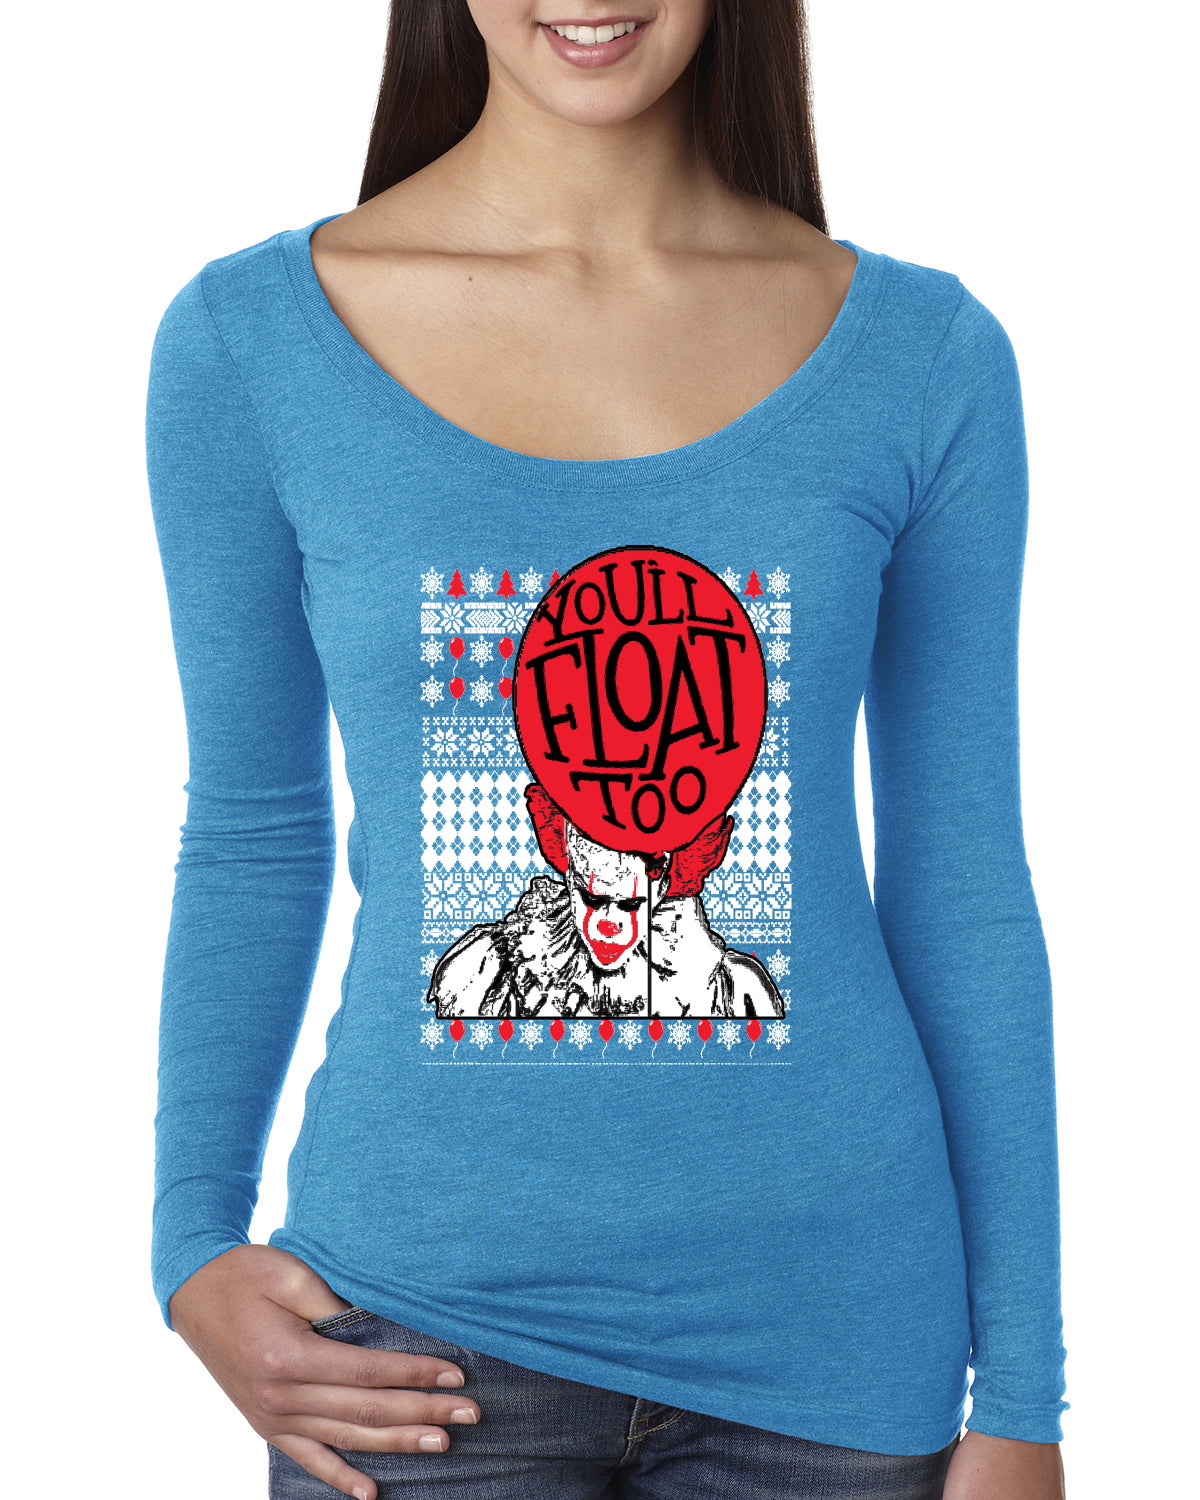 You'll Float Too | Clown IT Christmas Womens Scoop Long Sleeve Top